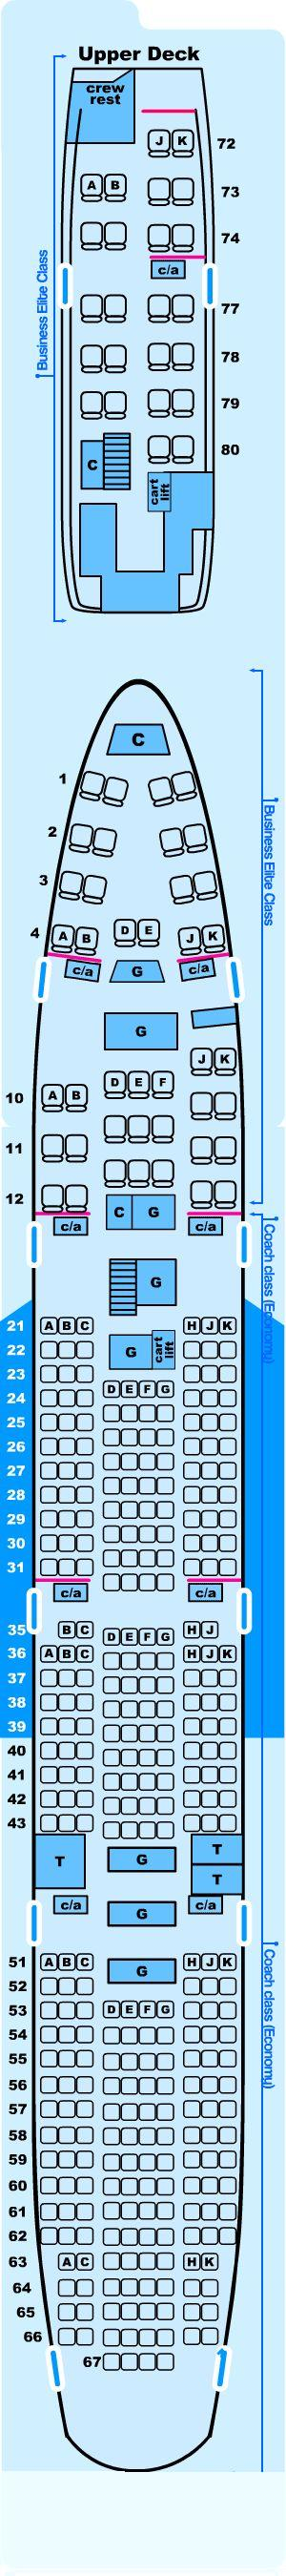 Seat map for Northwest Airlines Boeing B747 400